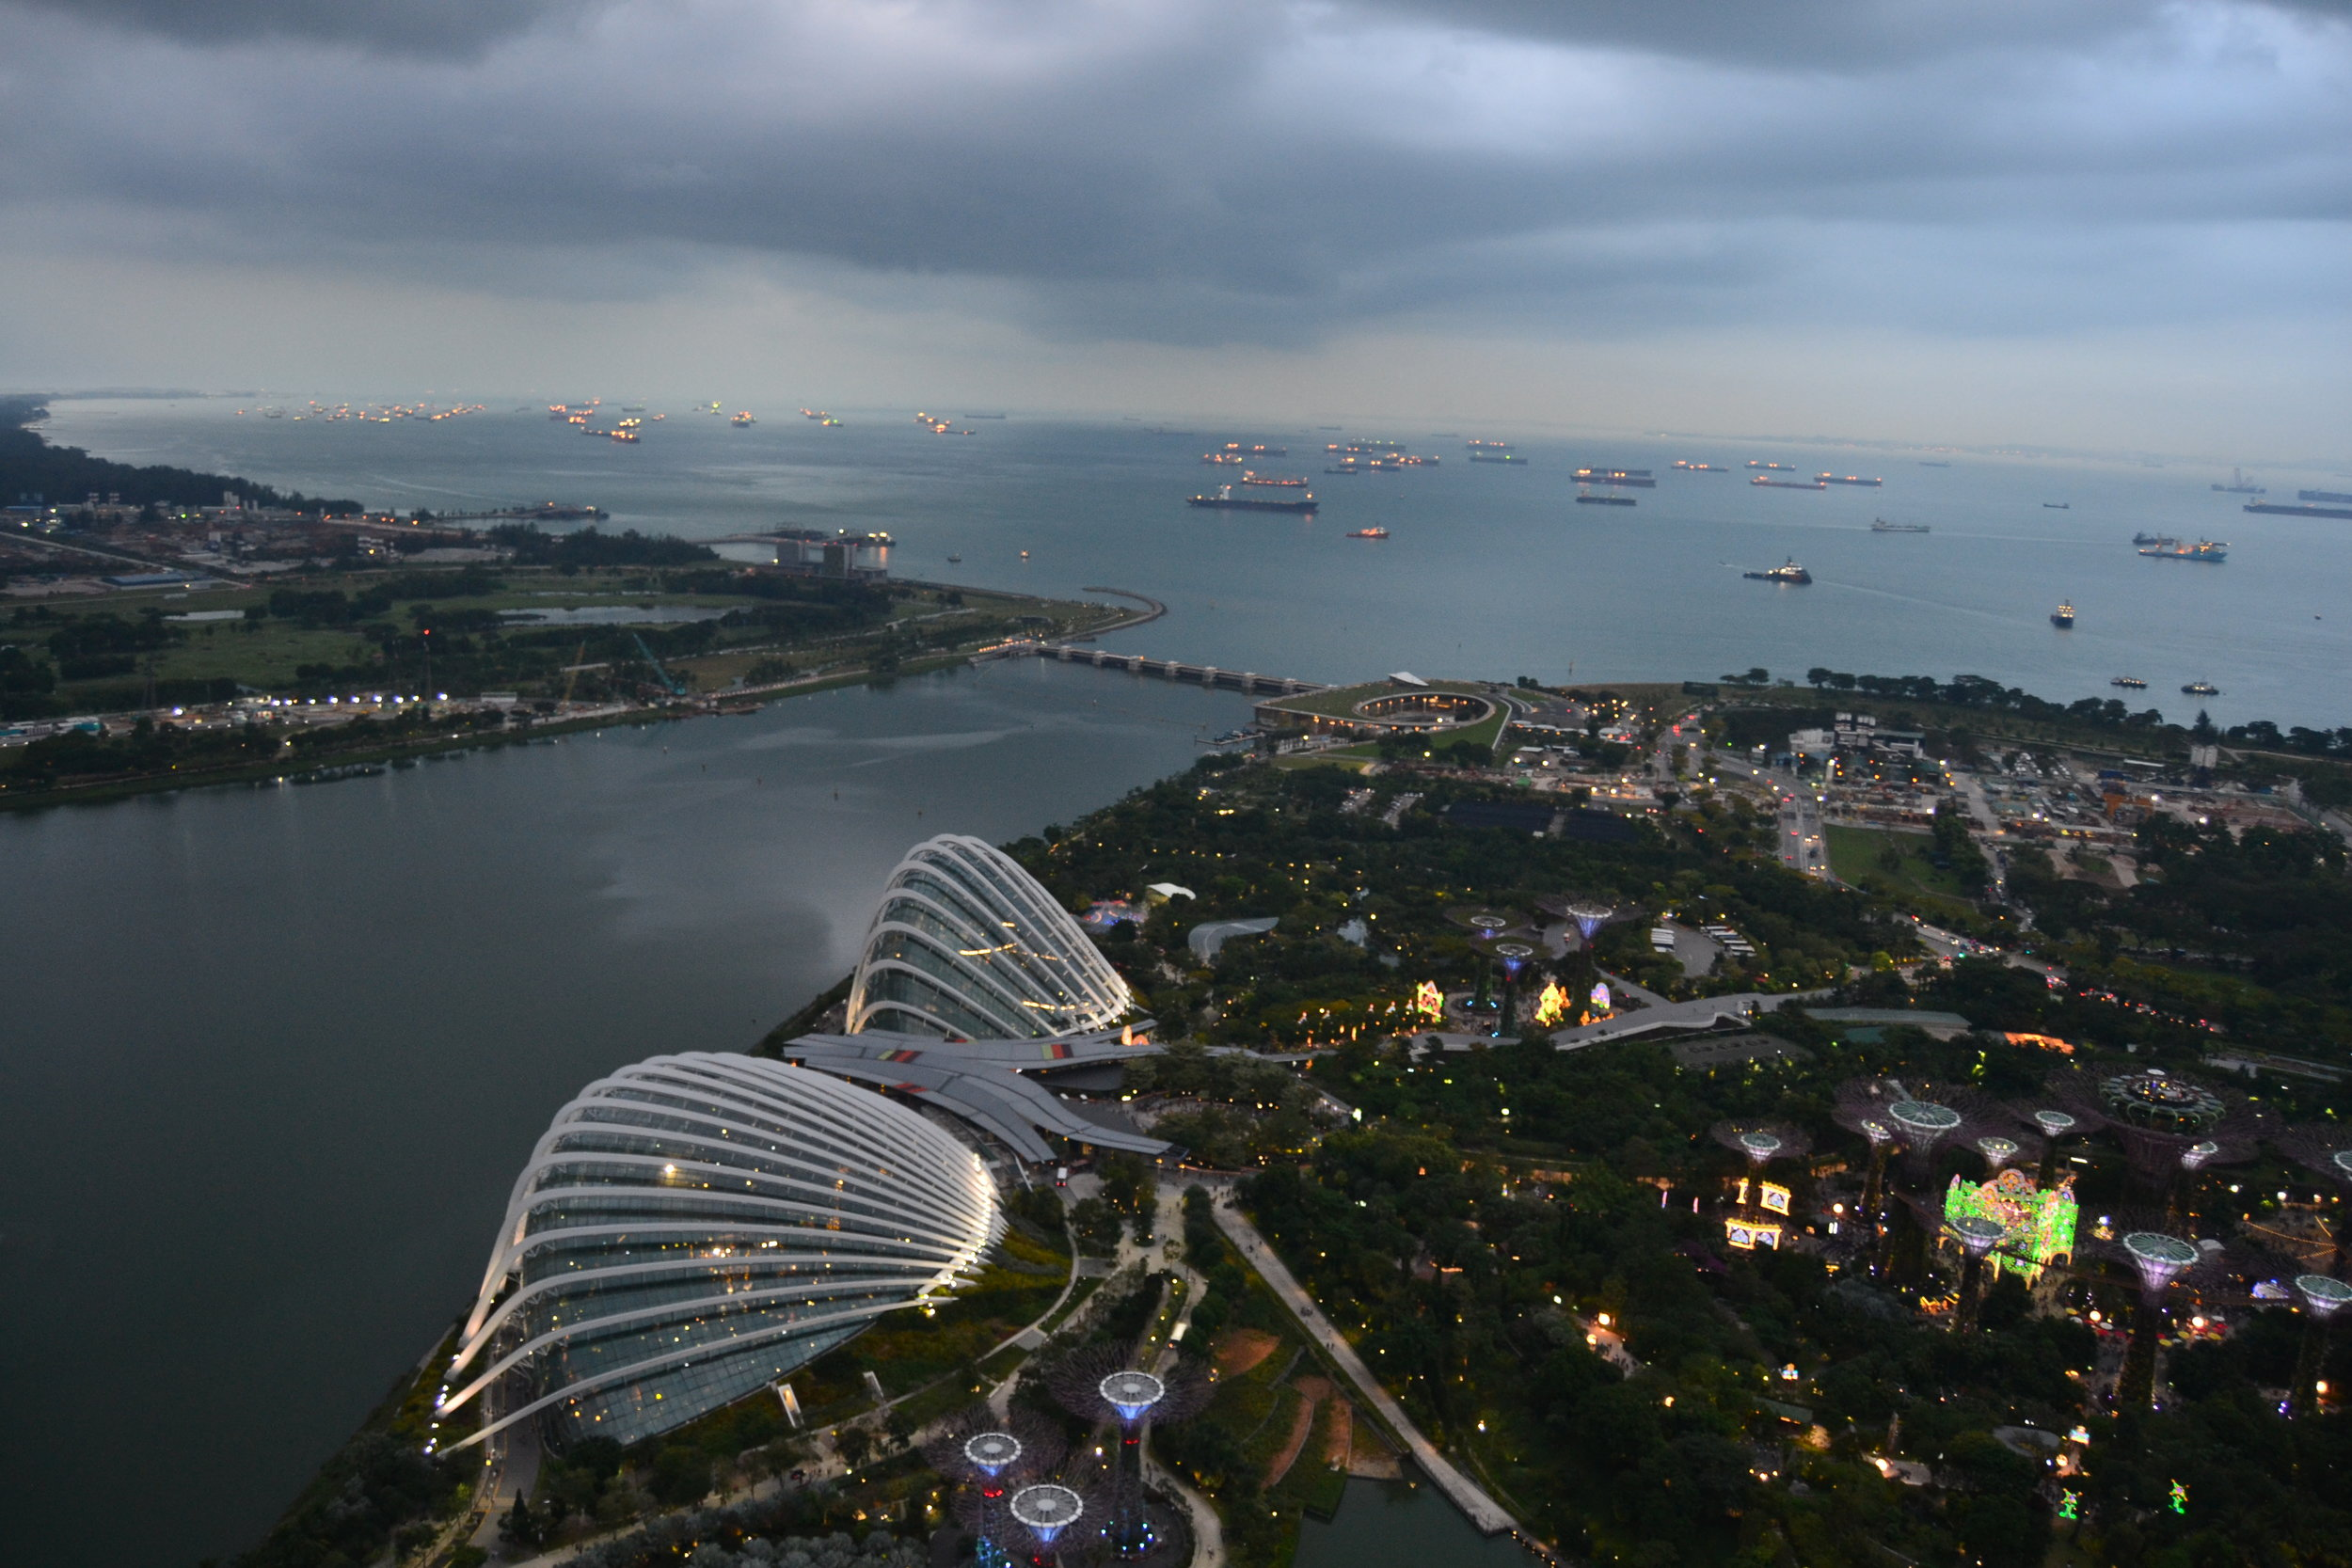 Gardens by the Bay with a view of the Cloud Forest Dome and Flower Dome